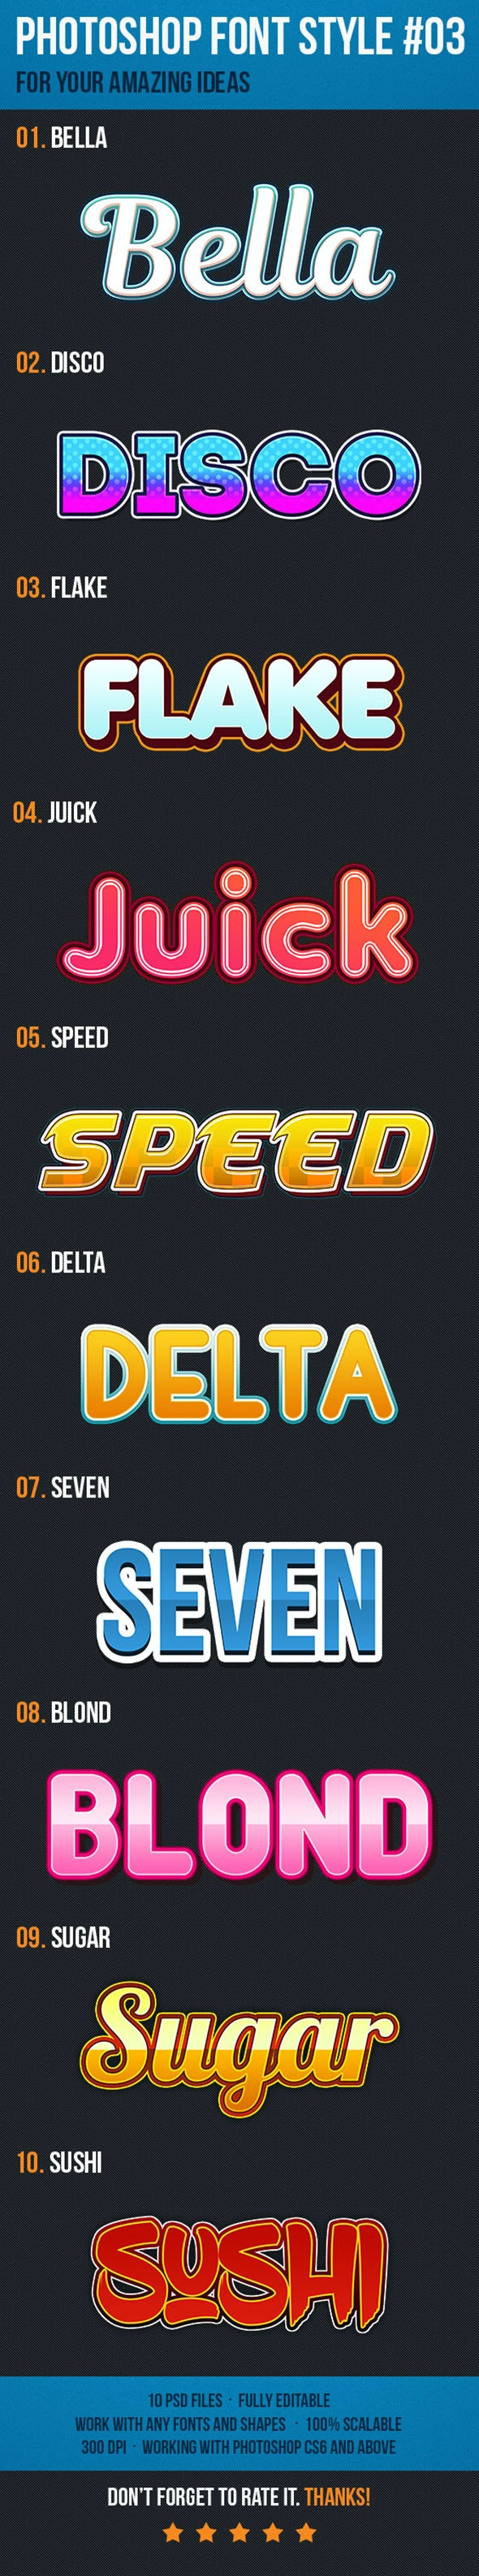 10 Font Style for Game Logo #03 - Text Effects Actions